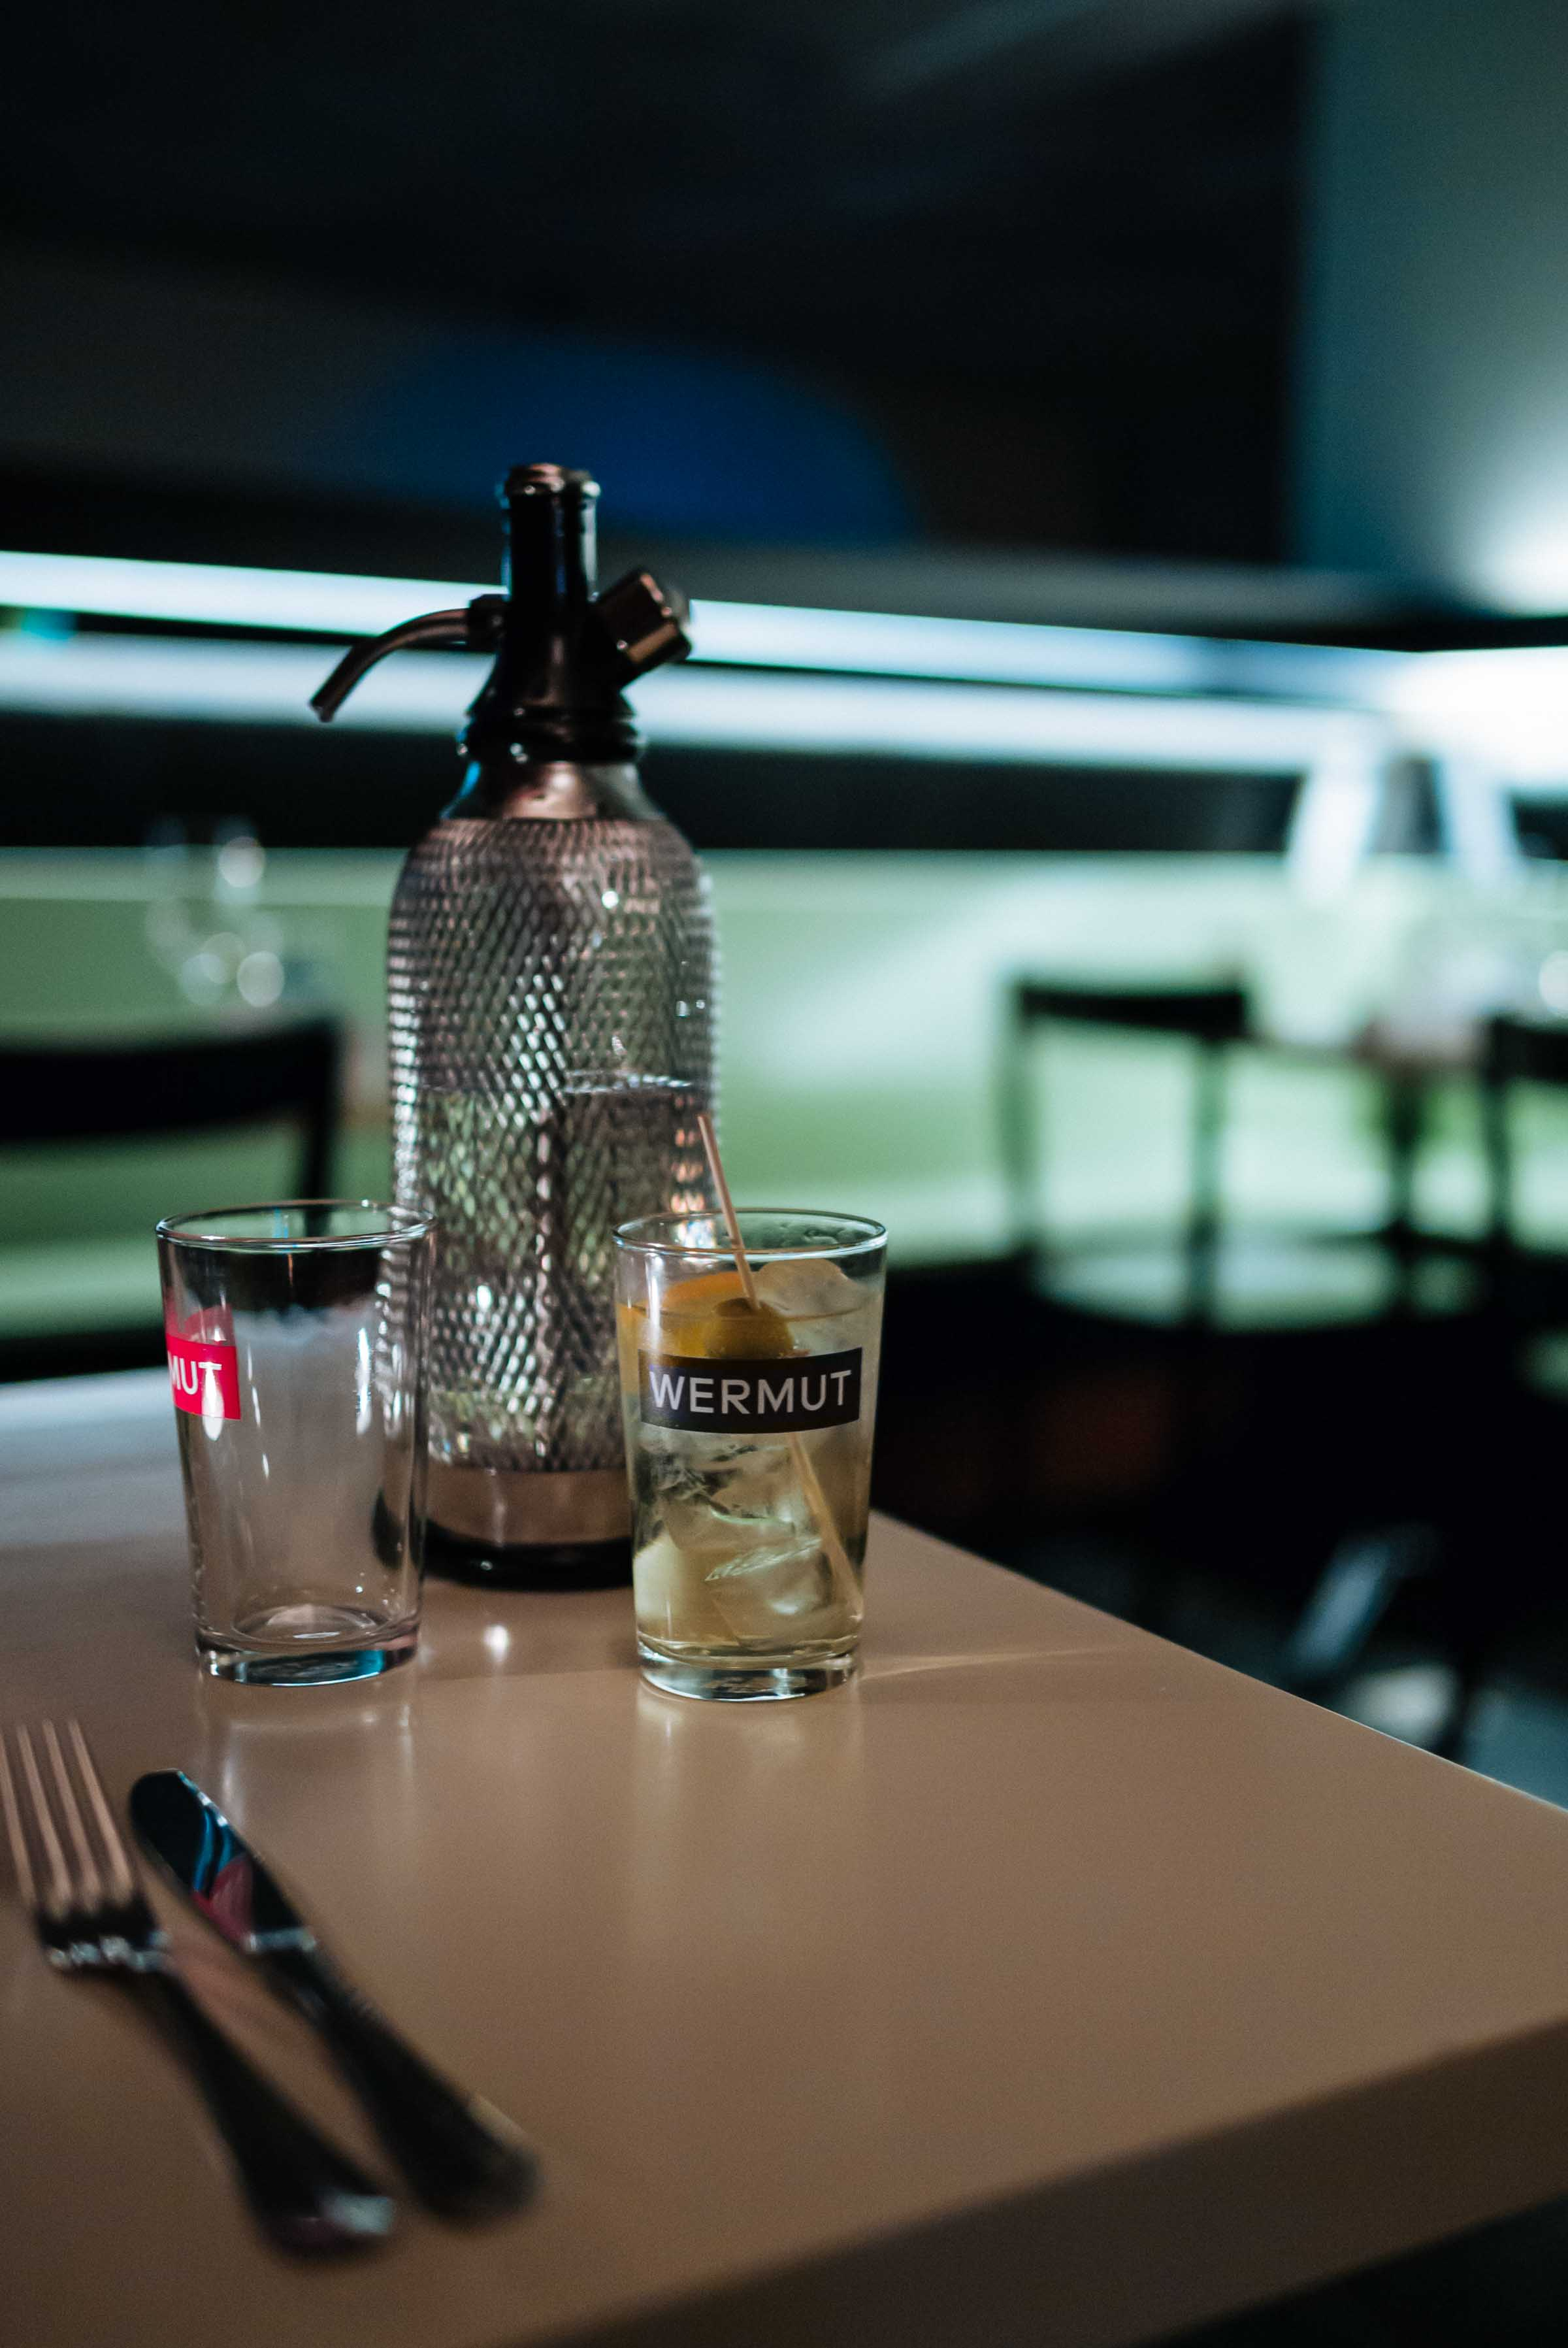 start dinner with vermouth and soda at Zurich Restaurant: Wermut Vermouth Bar and Restaurant